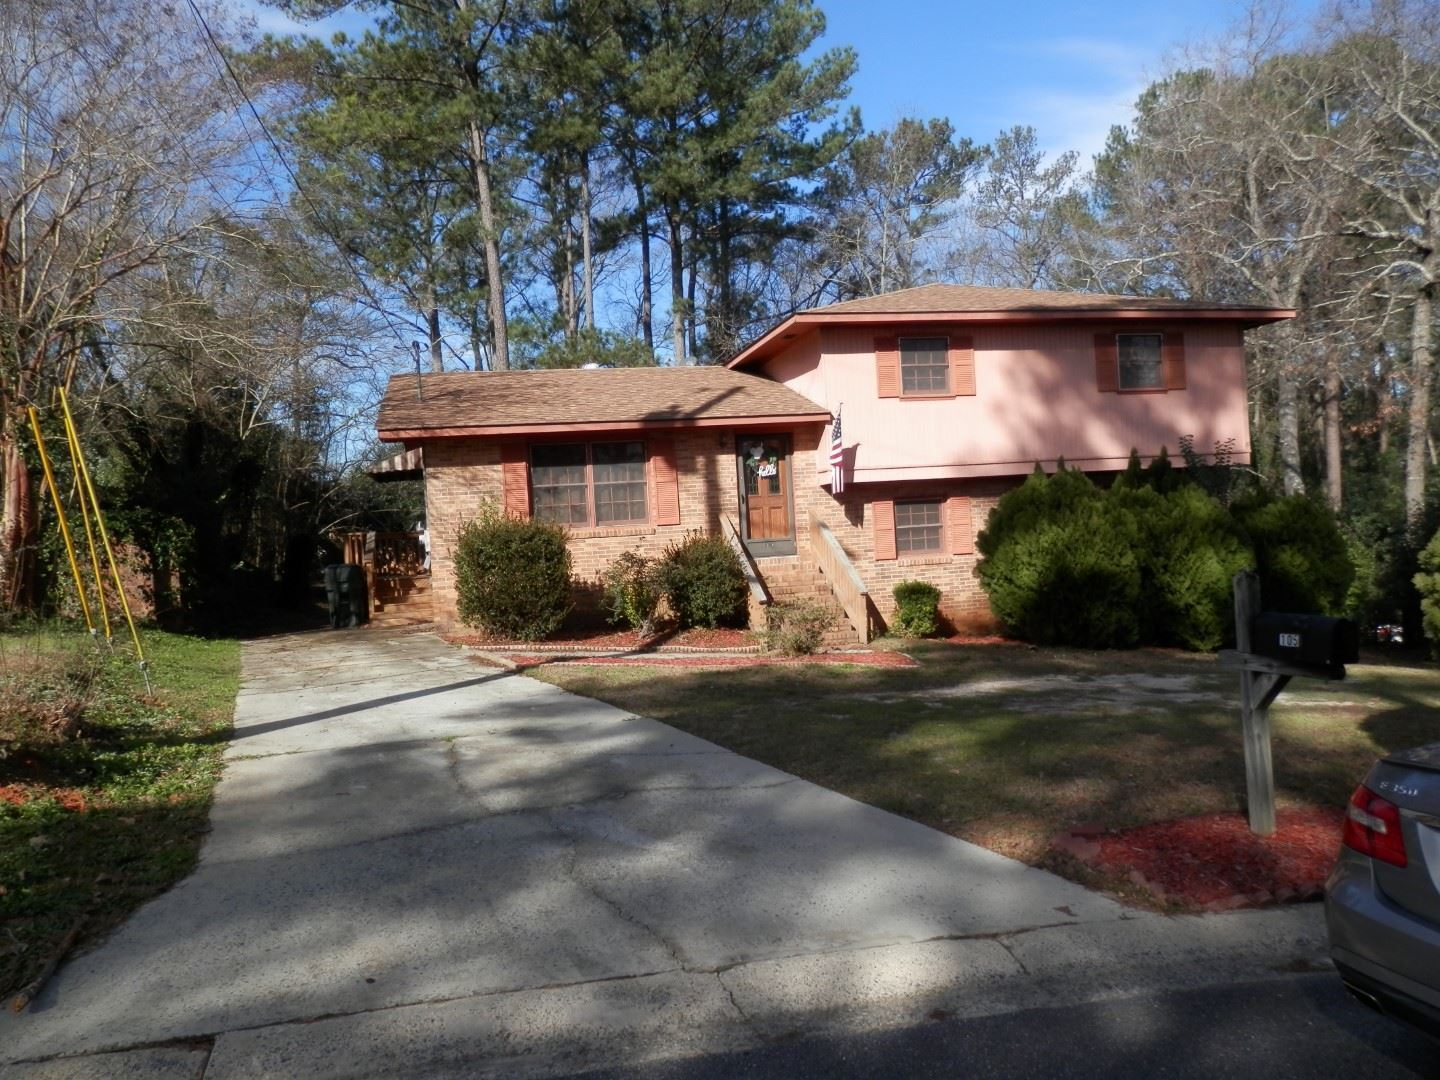 105 Vassas Ct, Warner Robins, GA 31088 - #: 8733049